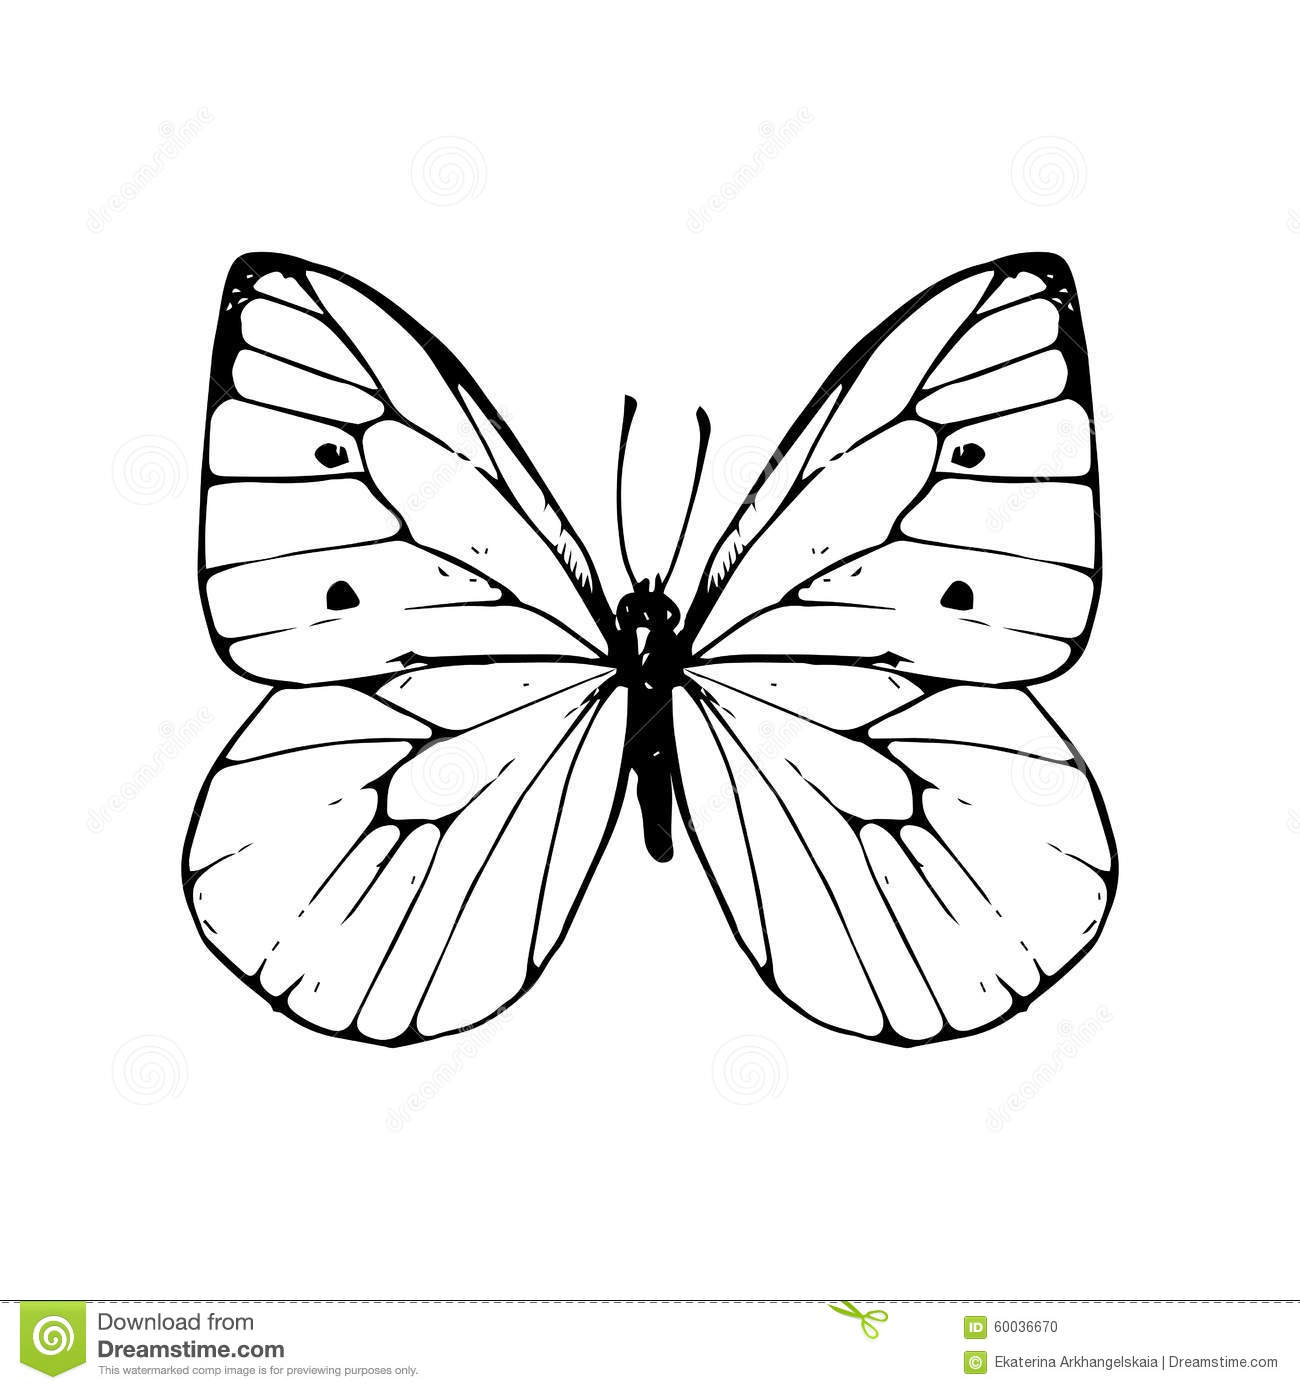 Line Drawing Butterfly : Hand drawn butterfly stock vector illustration of line